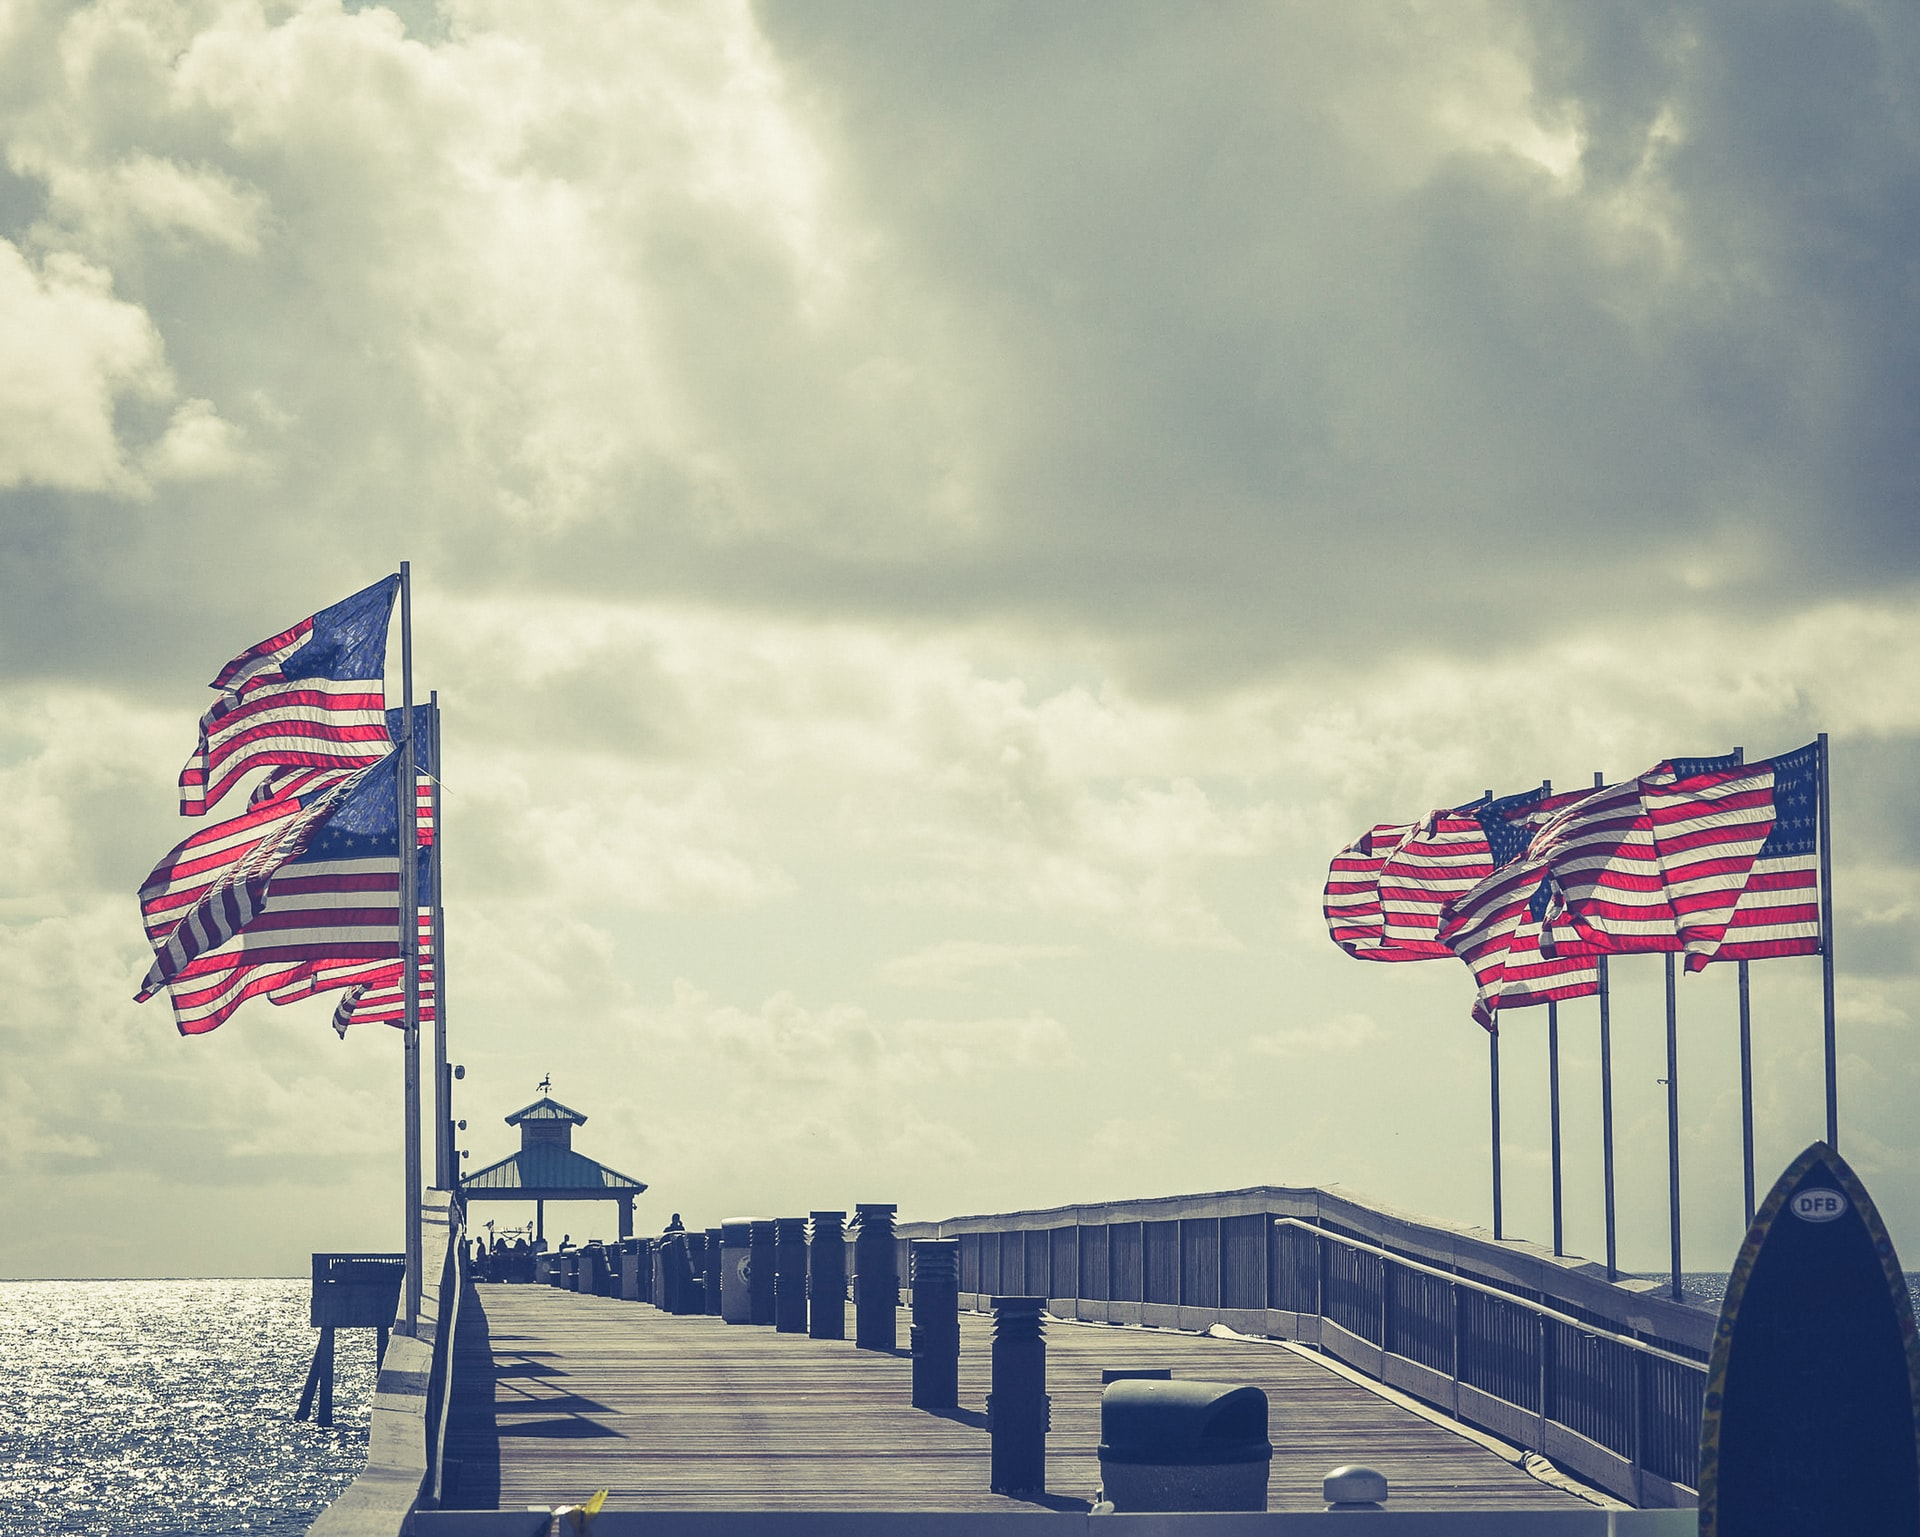 Flags on pier